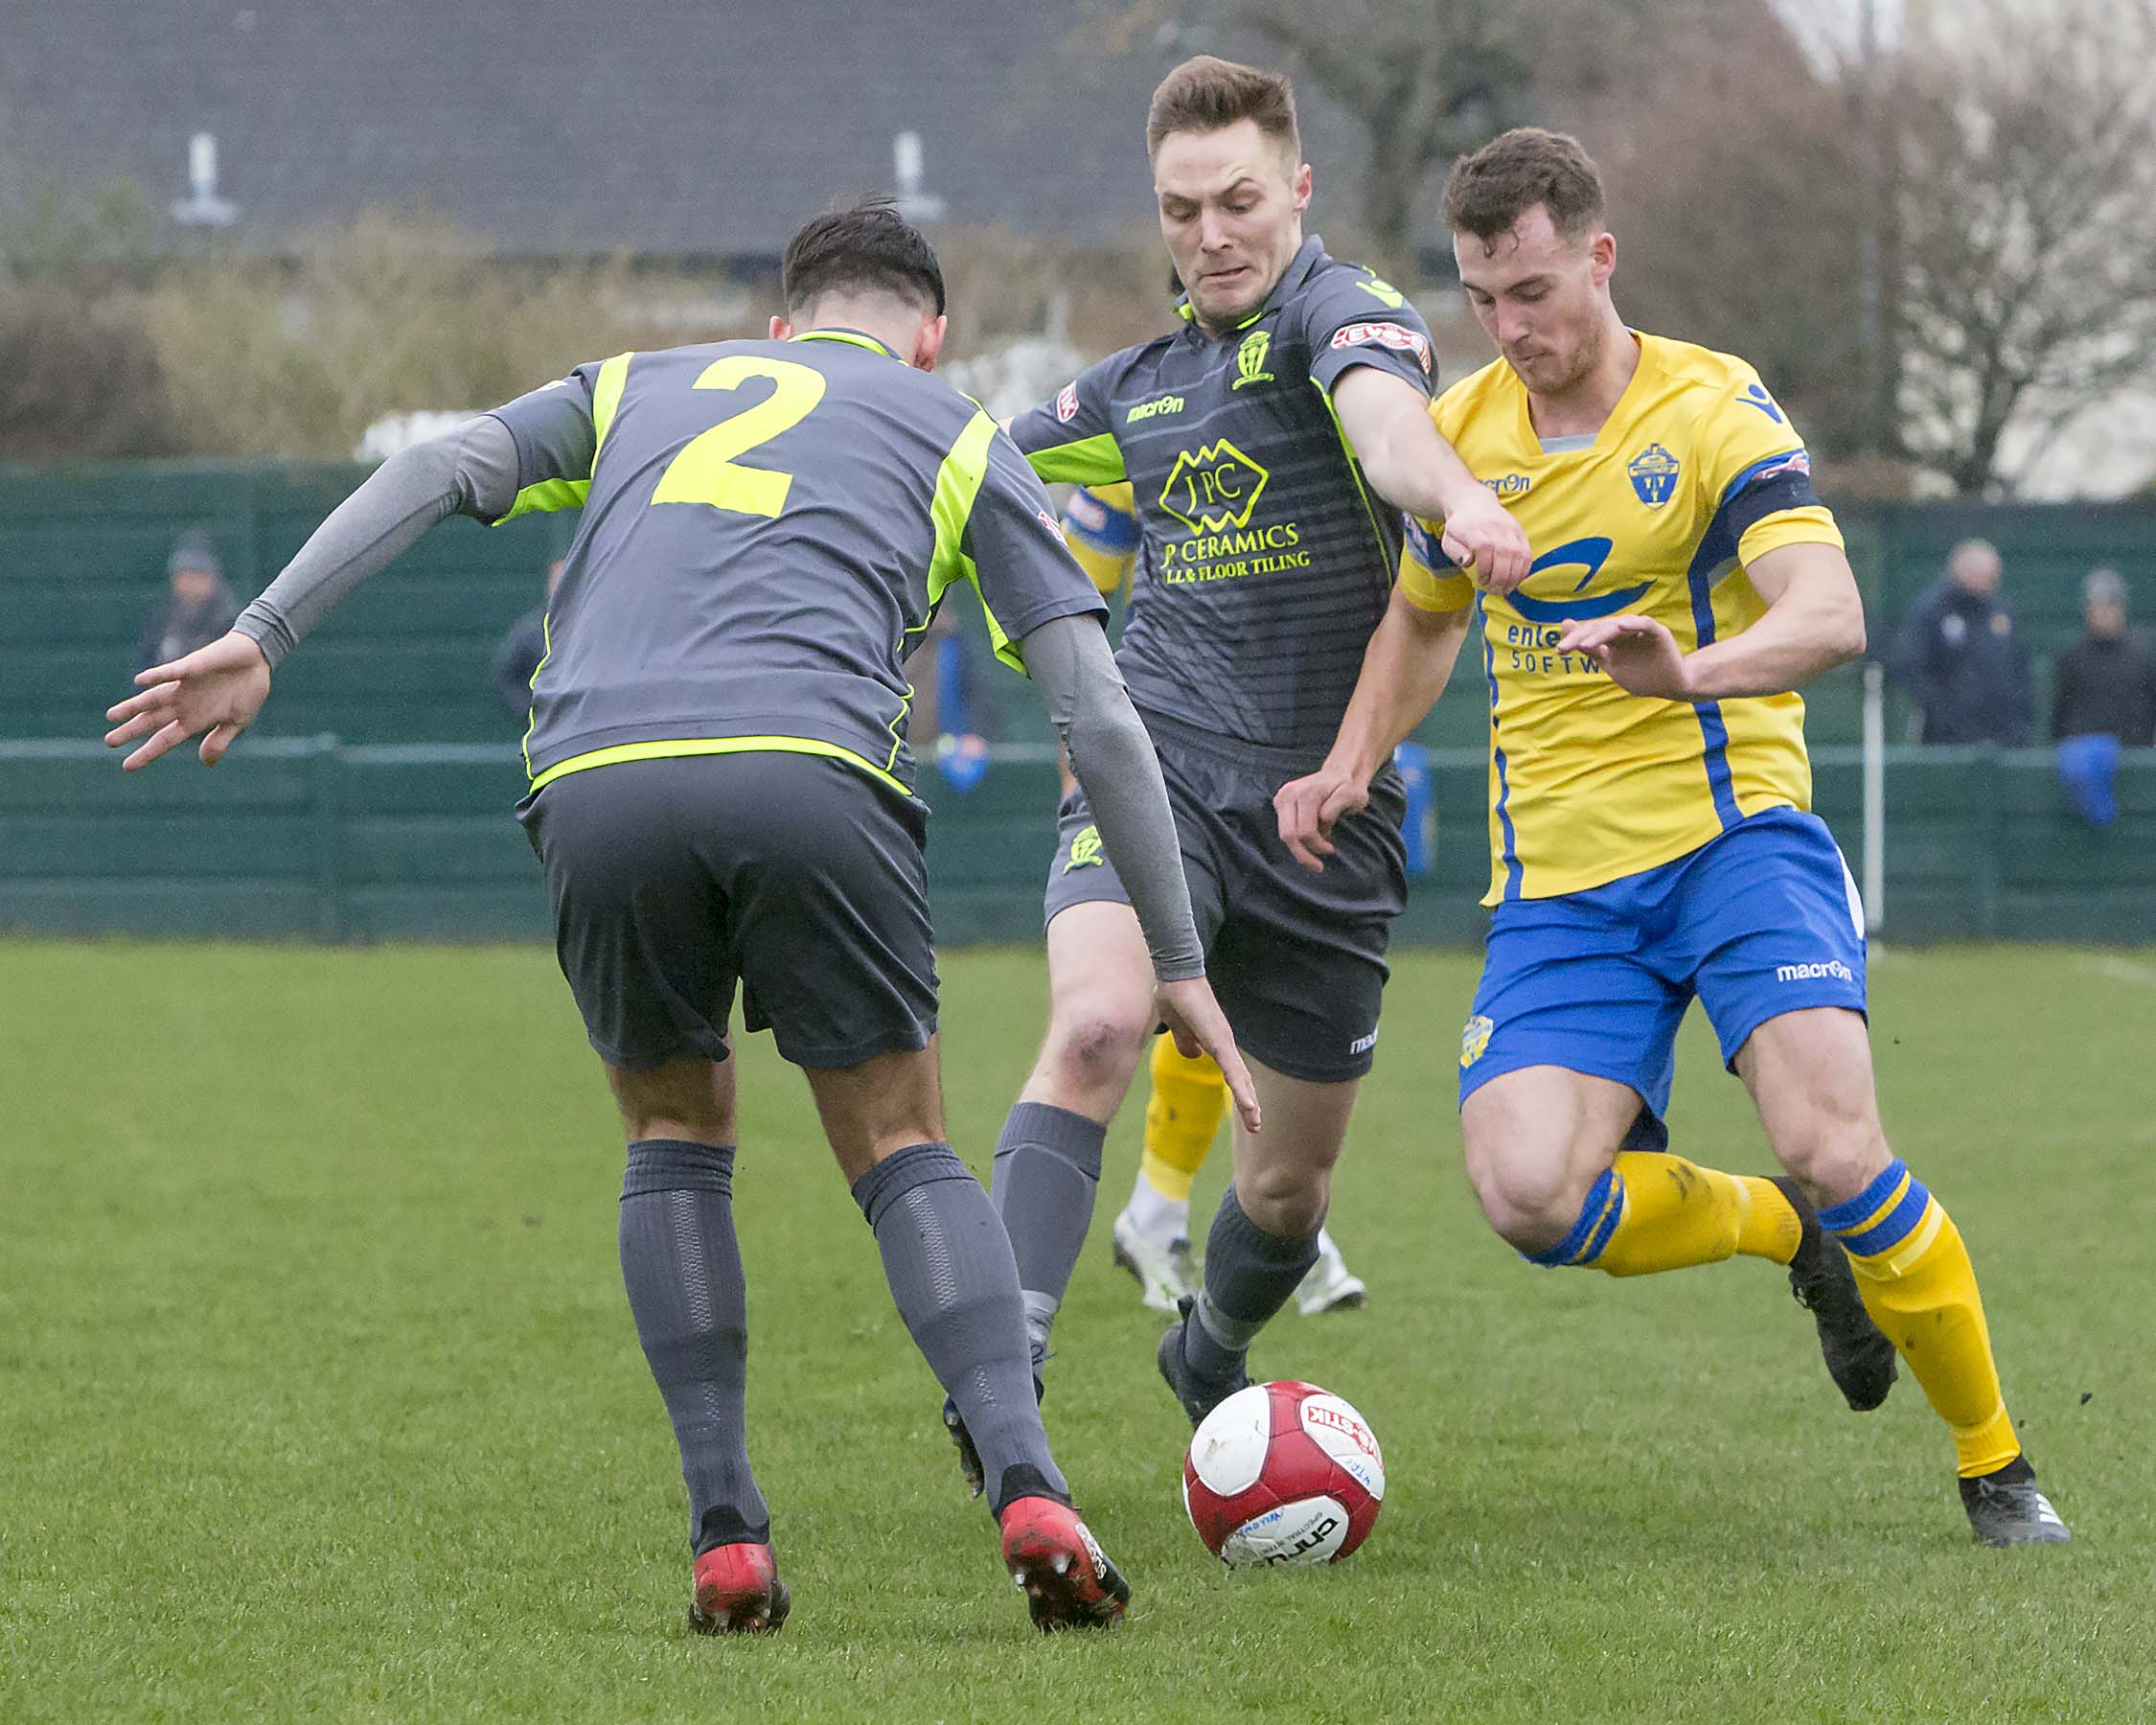 Liam Goulding, right, pictured in action against Witton Albion for Warrington Town during a Northern Premier League fixture. Picture: John Hopkins